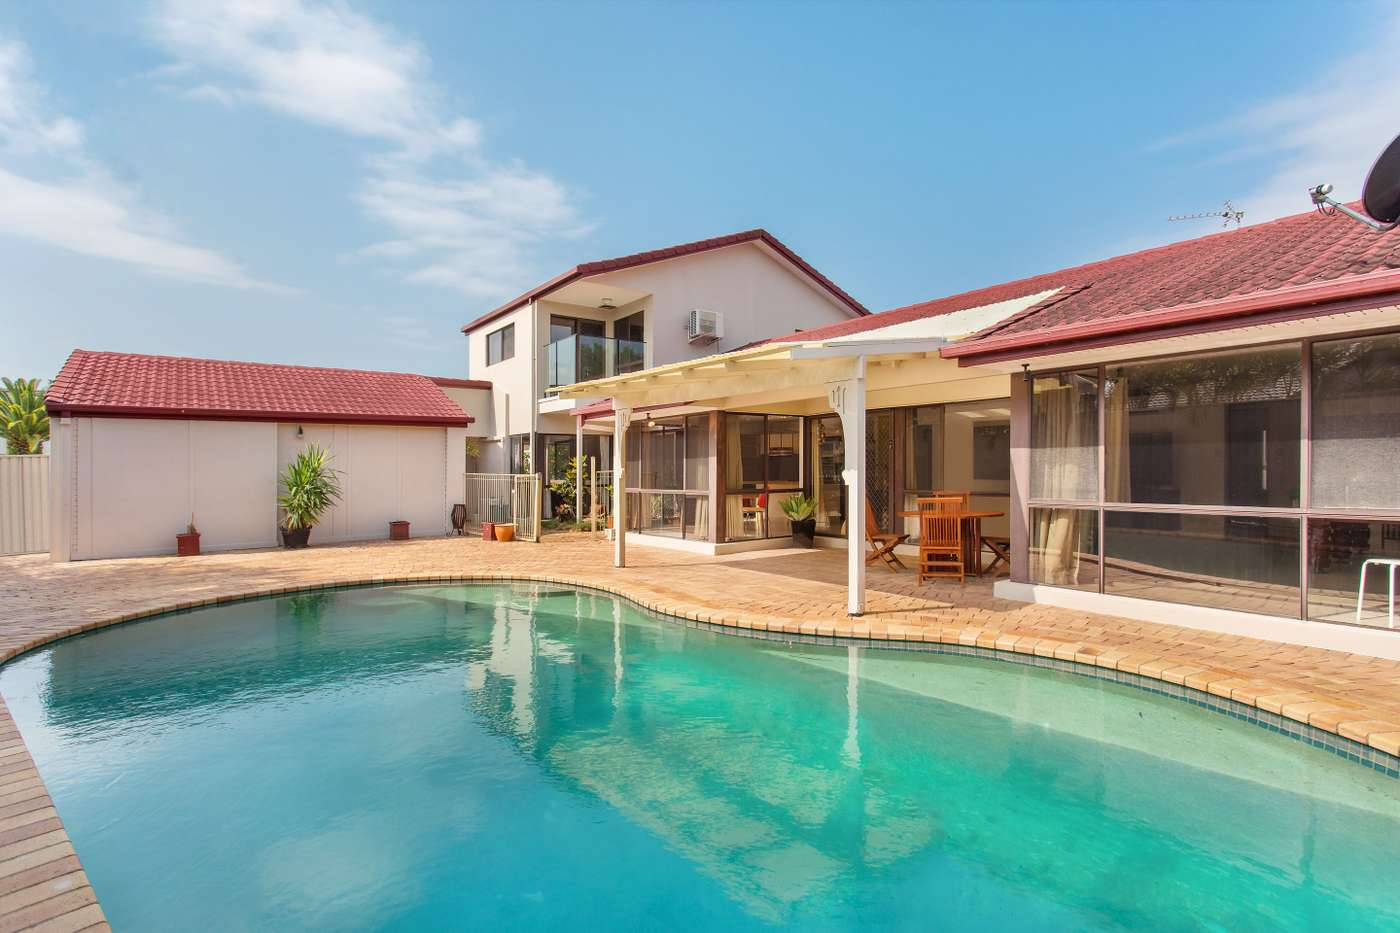 Main view of Homely house listing, 14 Karabella Court, Mermaid Waters, QLD 4218